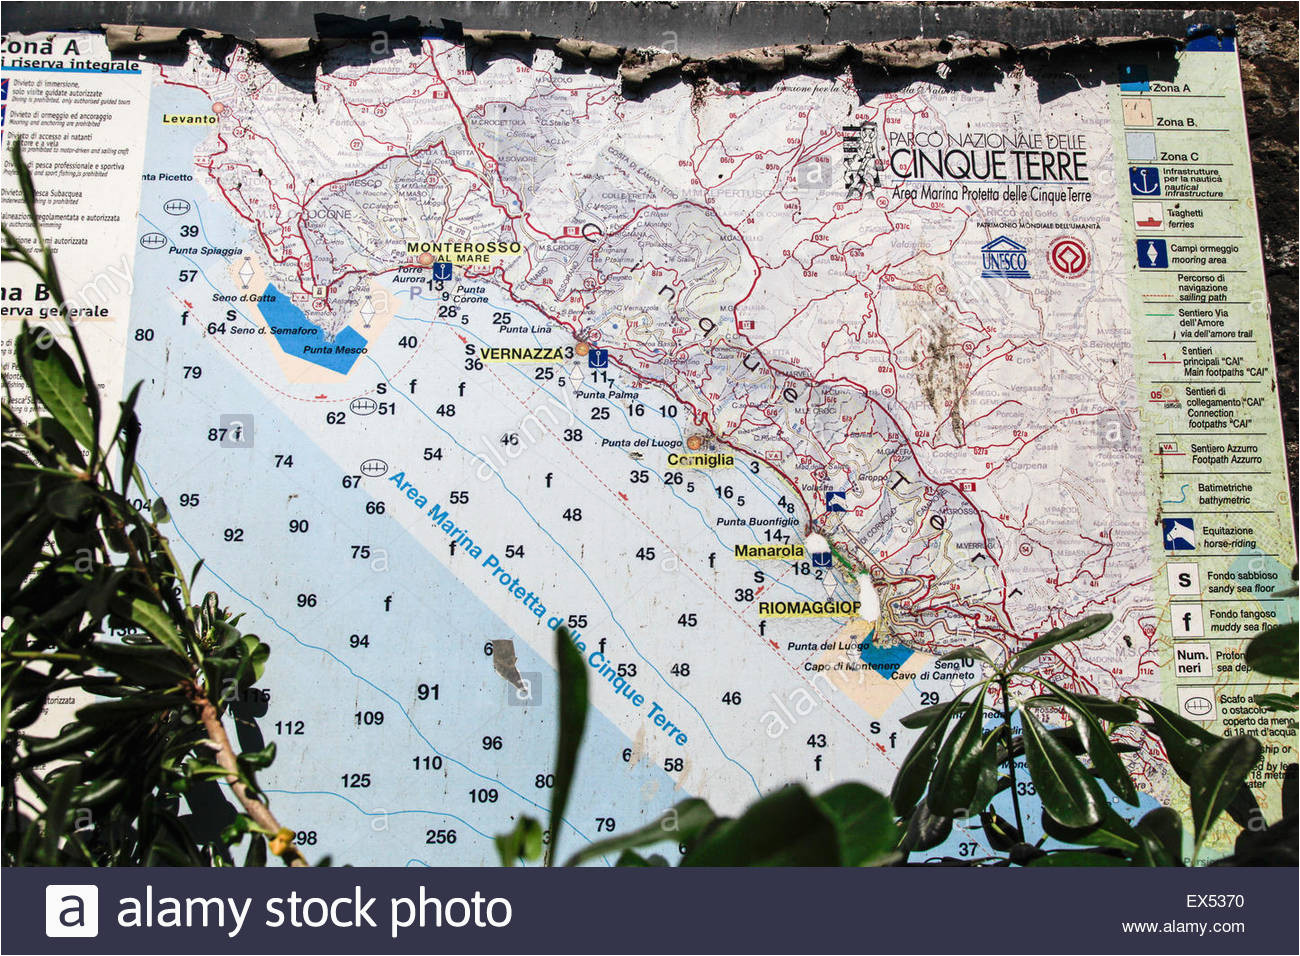 italian riviera map stock photos italian riviera map stock images